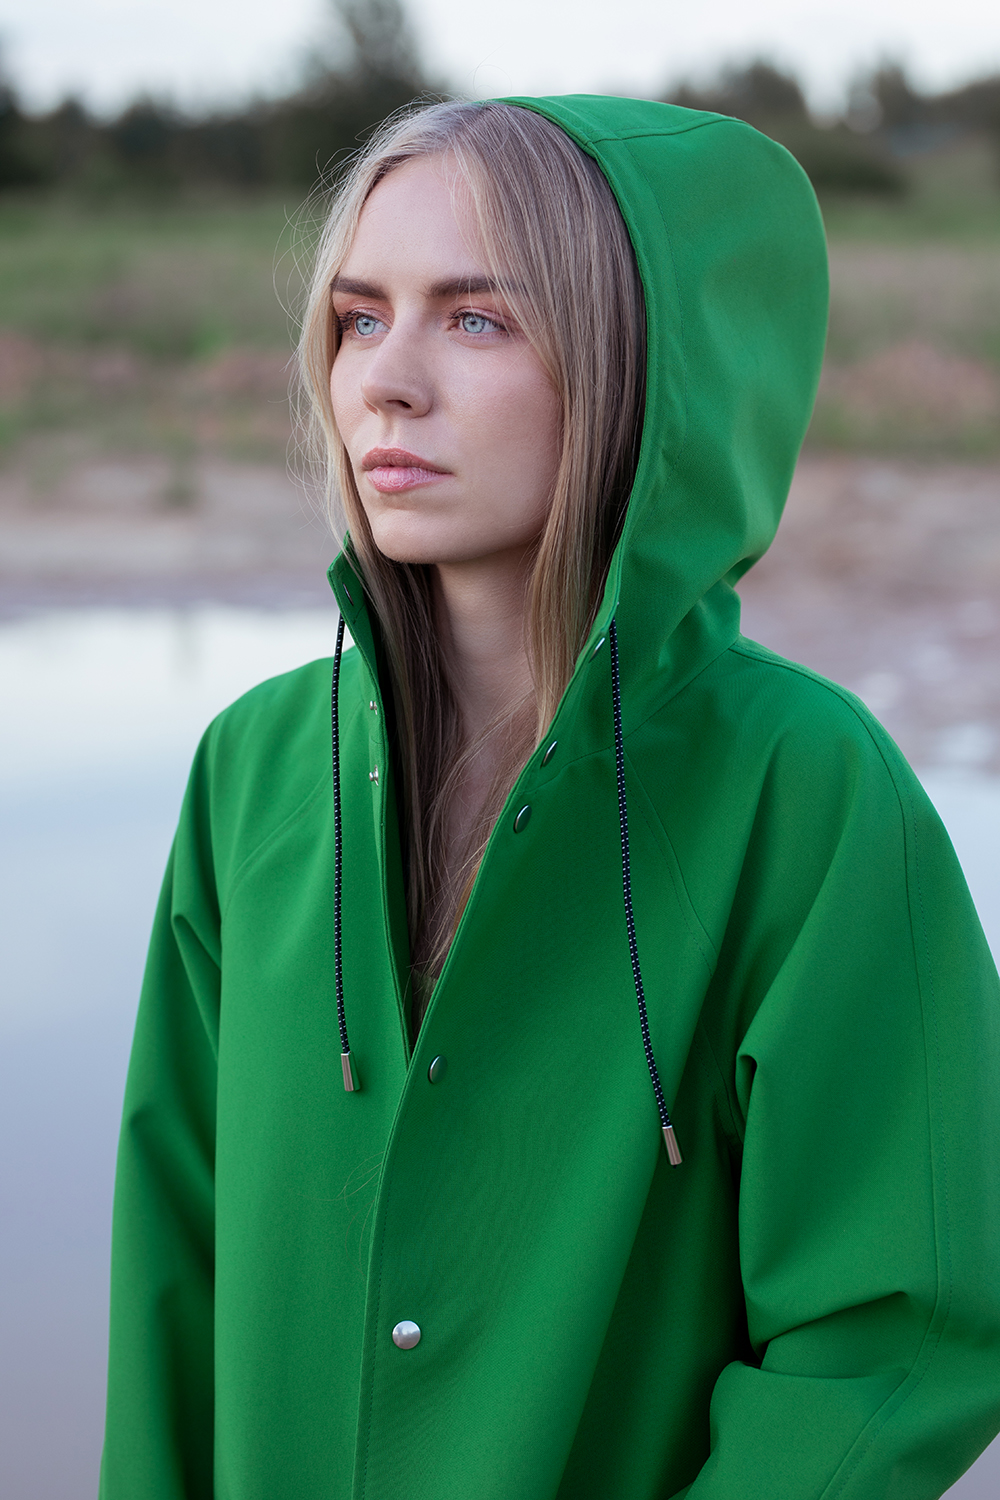 A woman's wearing a waterproof, windproof and breathable unisex raincoat in the nature